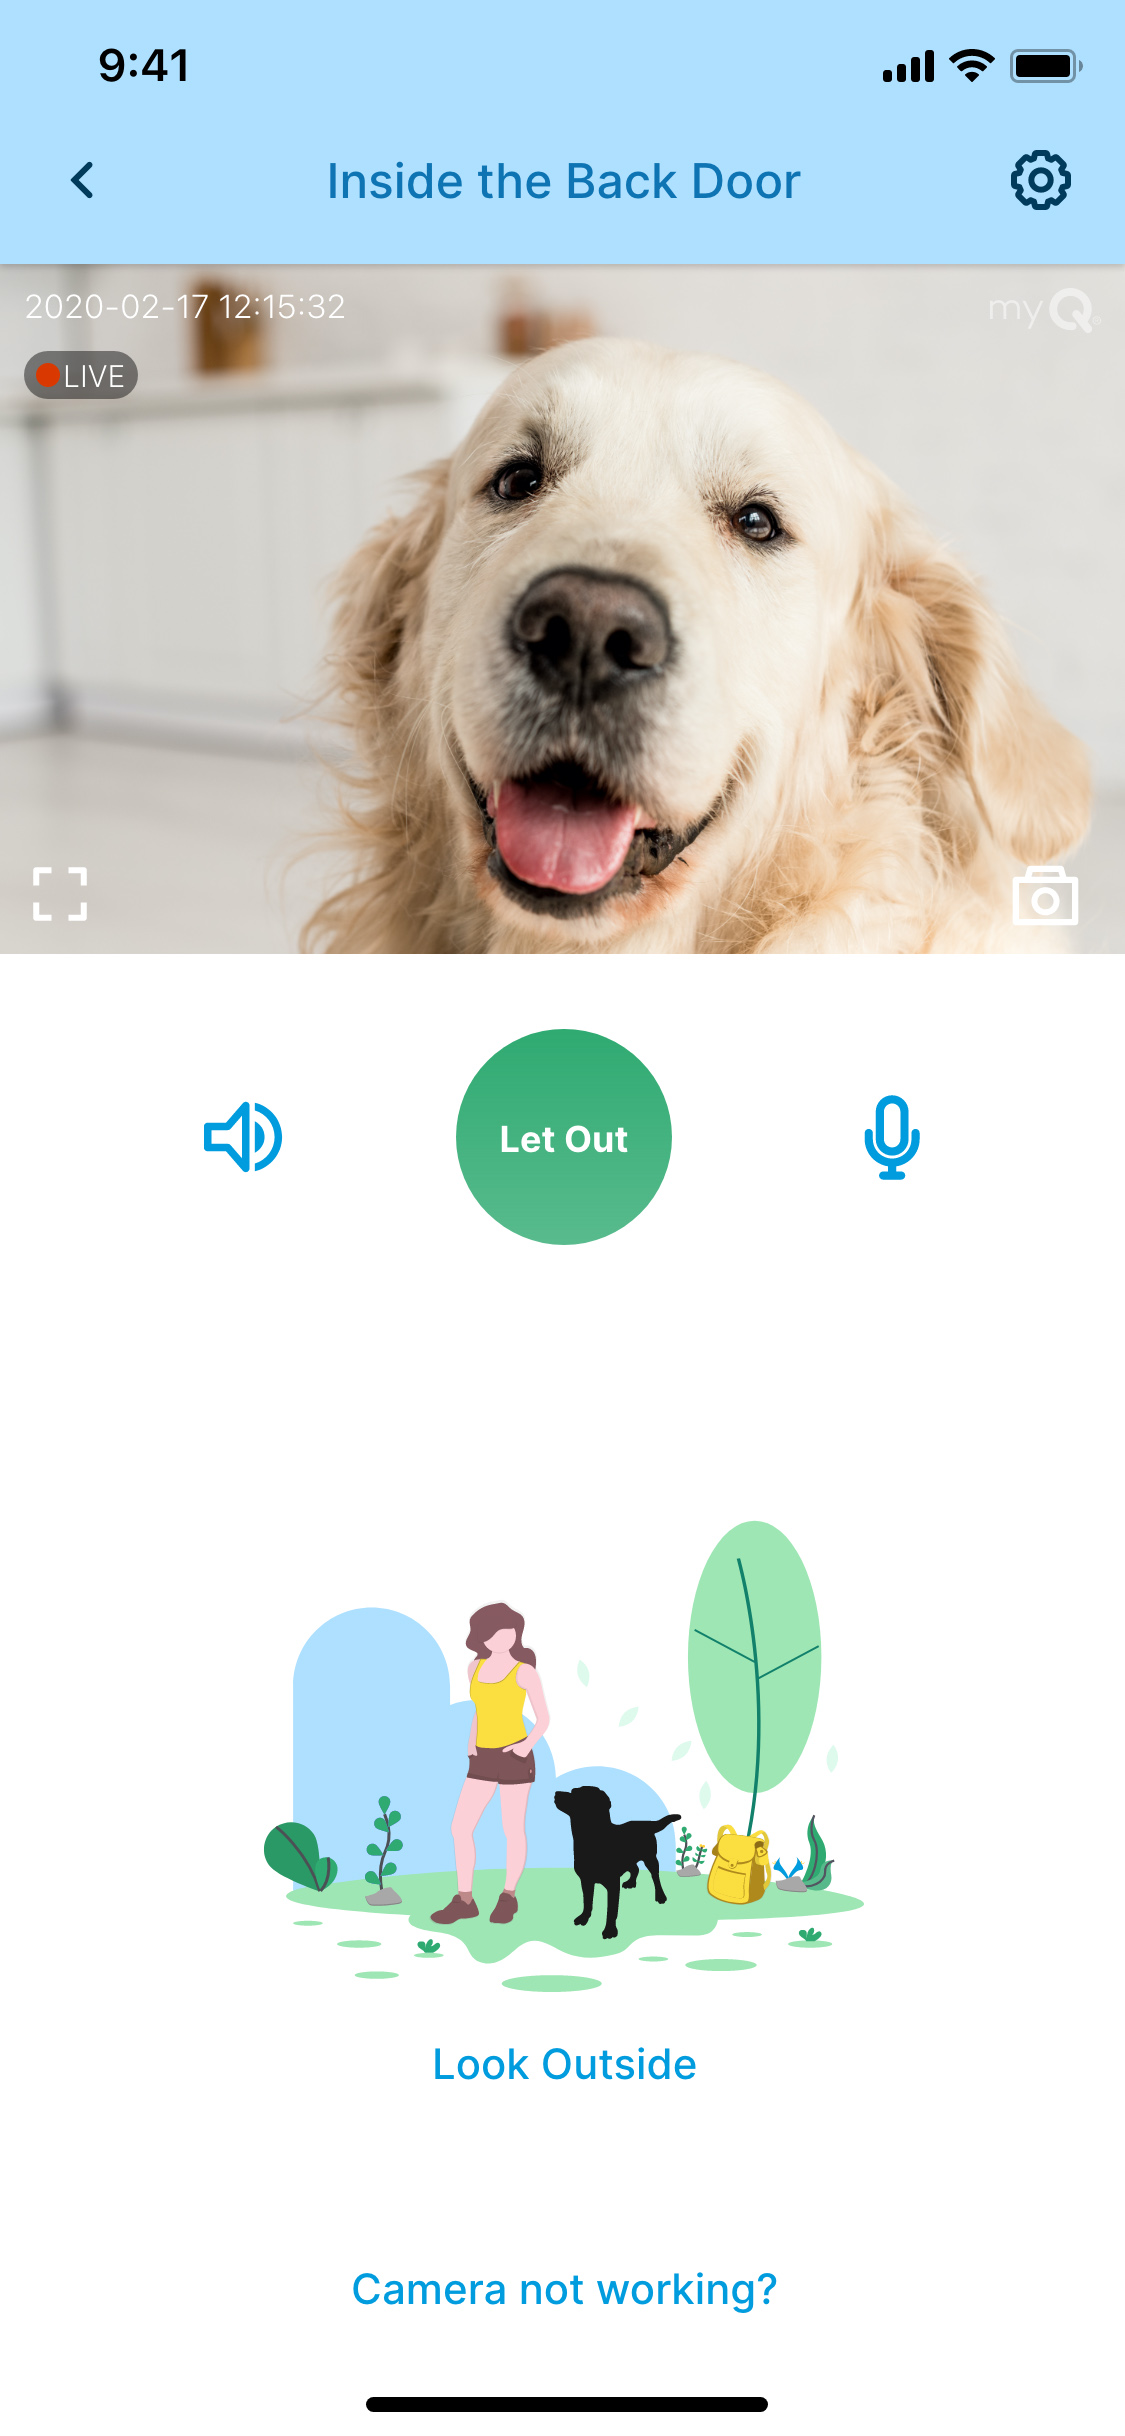 Live video streaming and 2-way communication through the myQ Pet Portal app lets you stay connected to your pet.